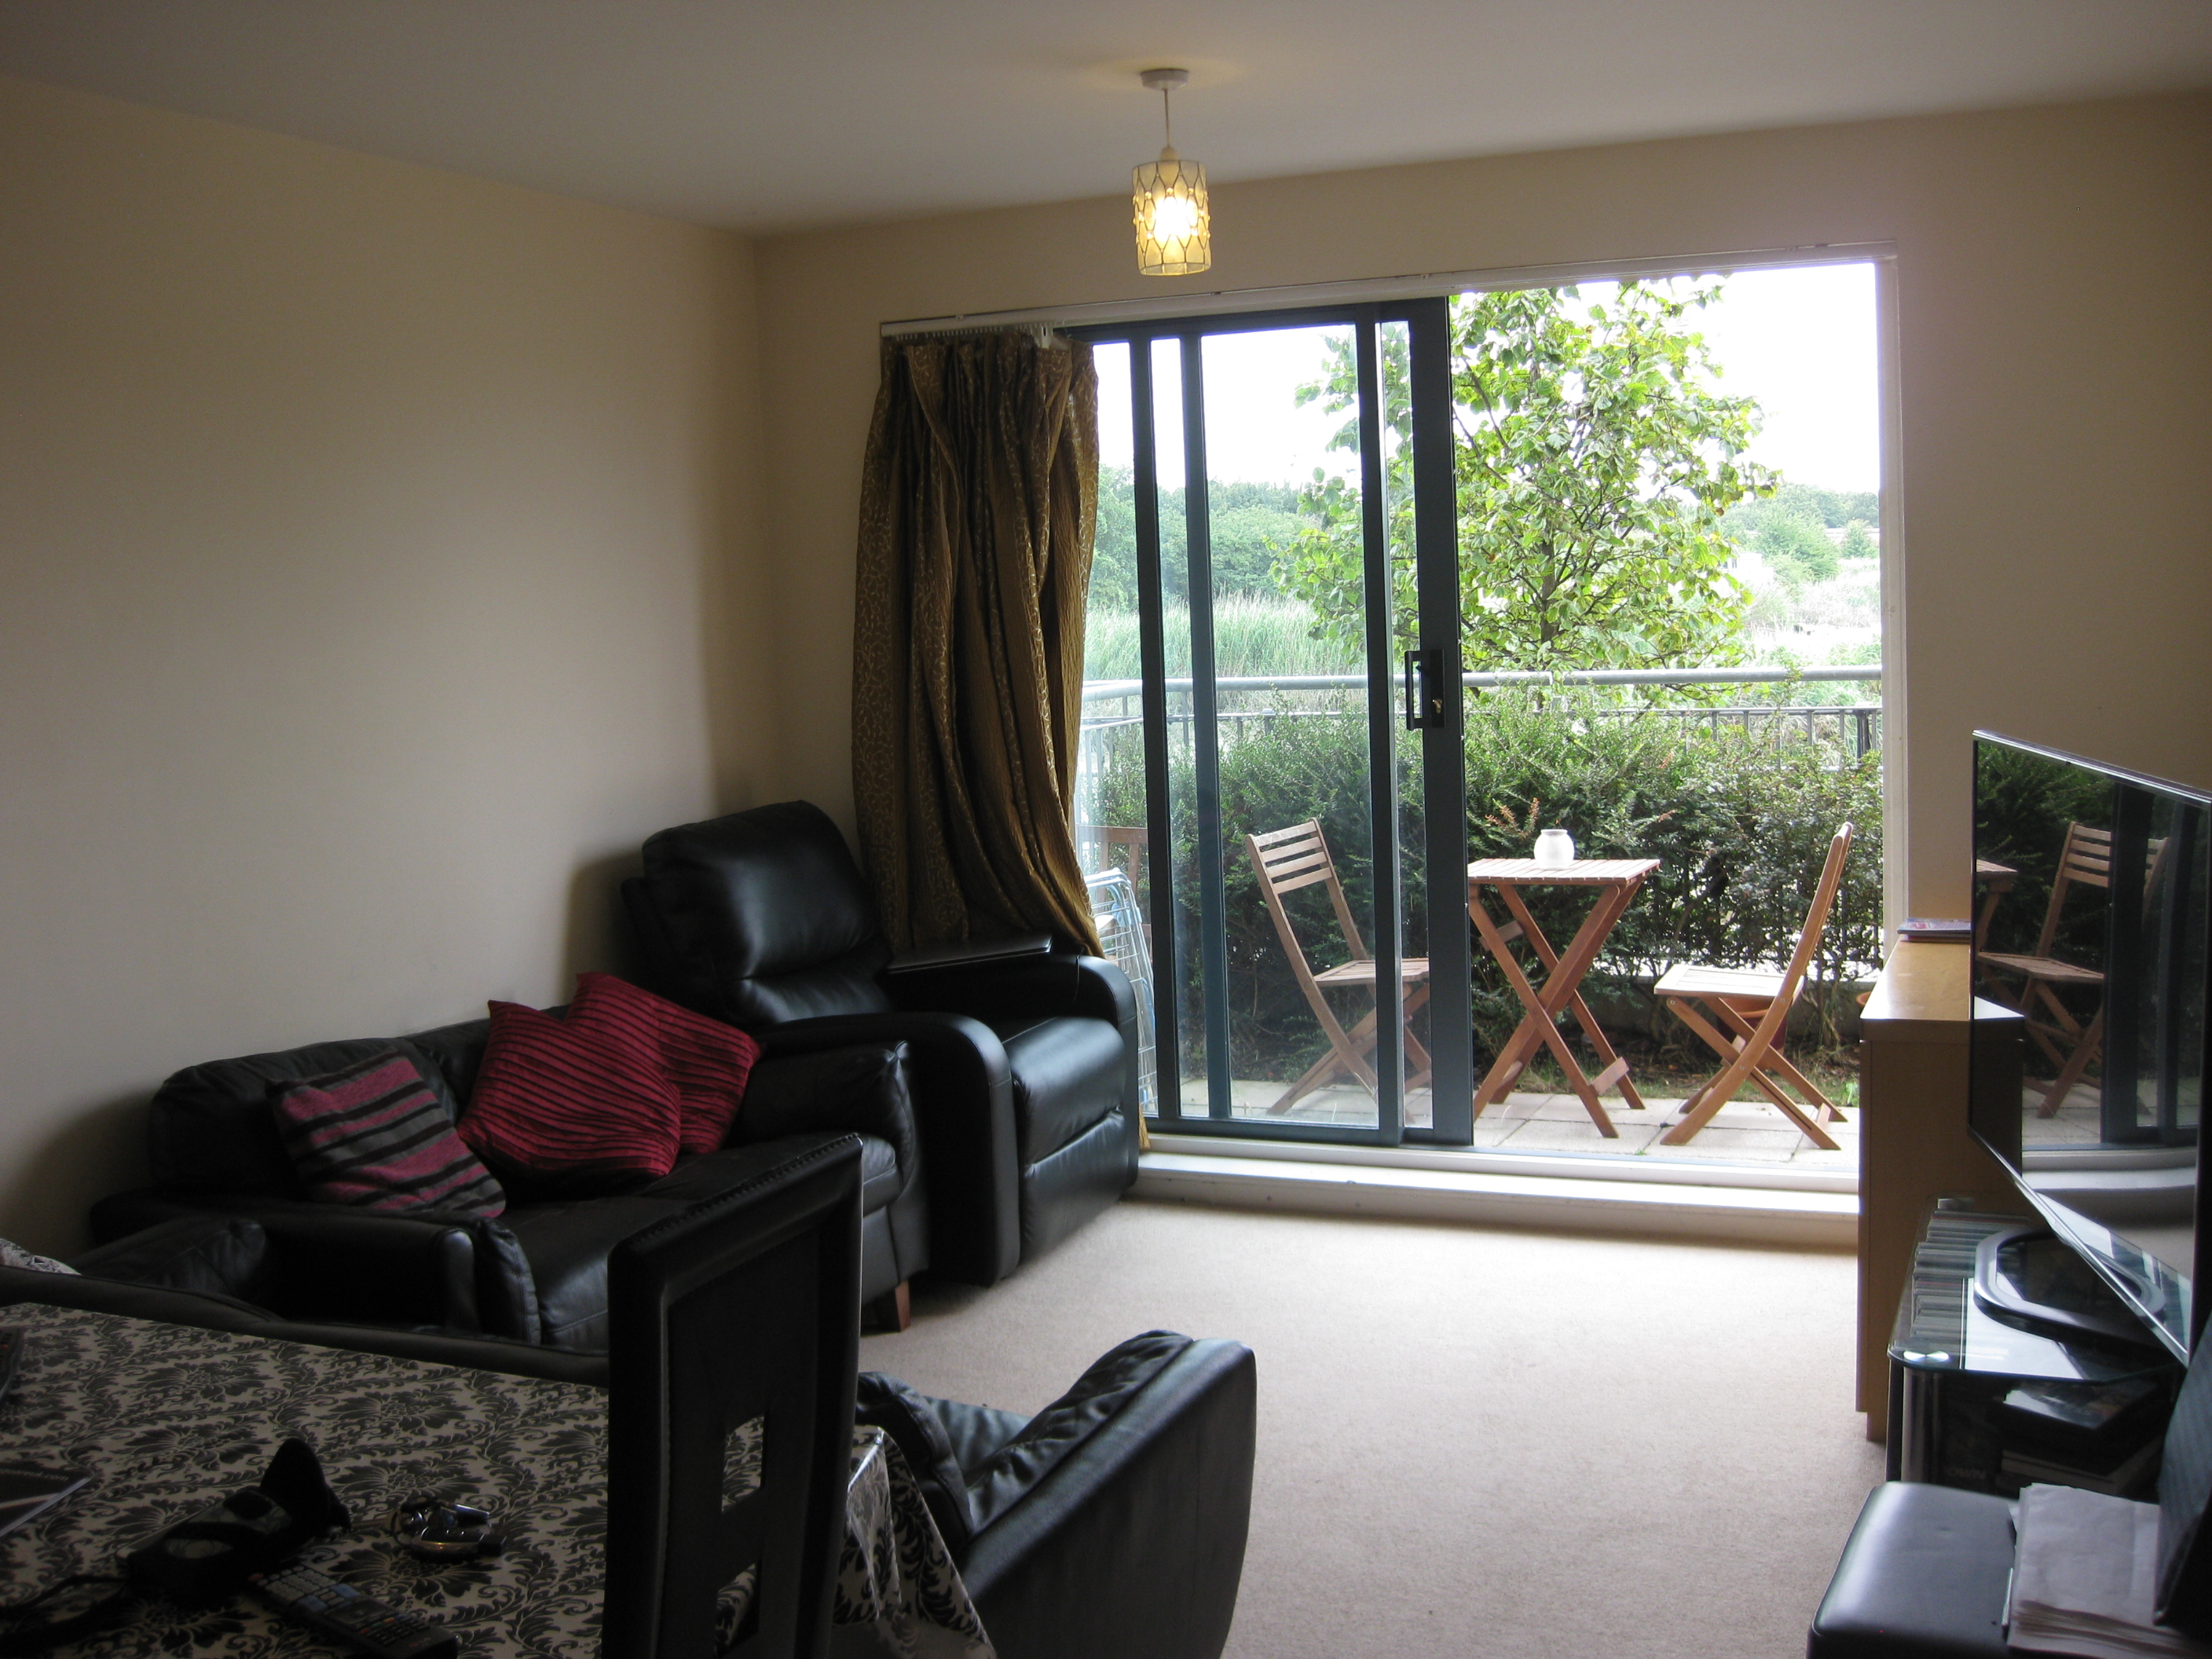 CRICK COURT, SPRING PLACE, BARKING IG11